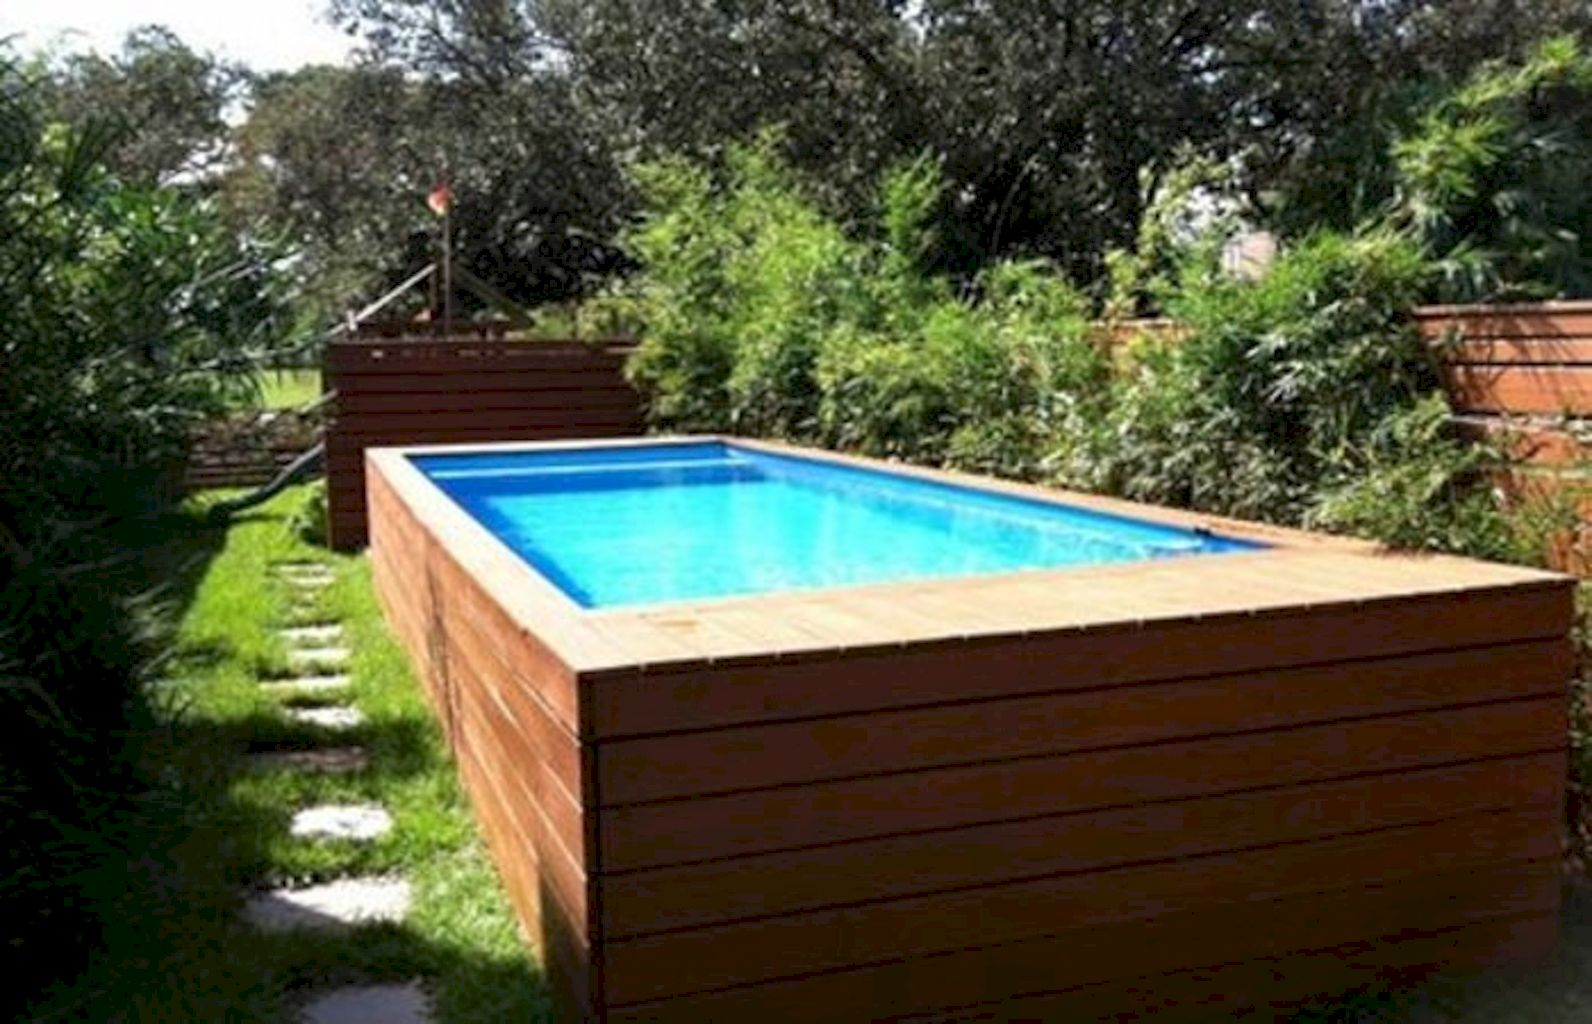 Simple pool designs built above ground designed with cheap materials for simple outdoor relieves Image 2